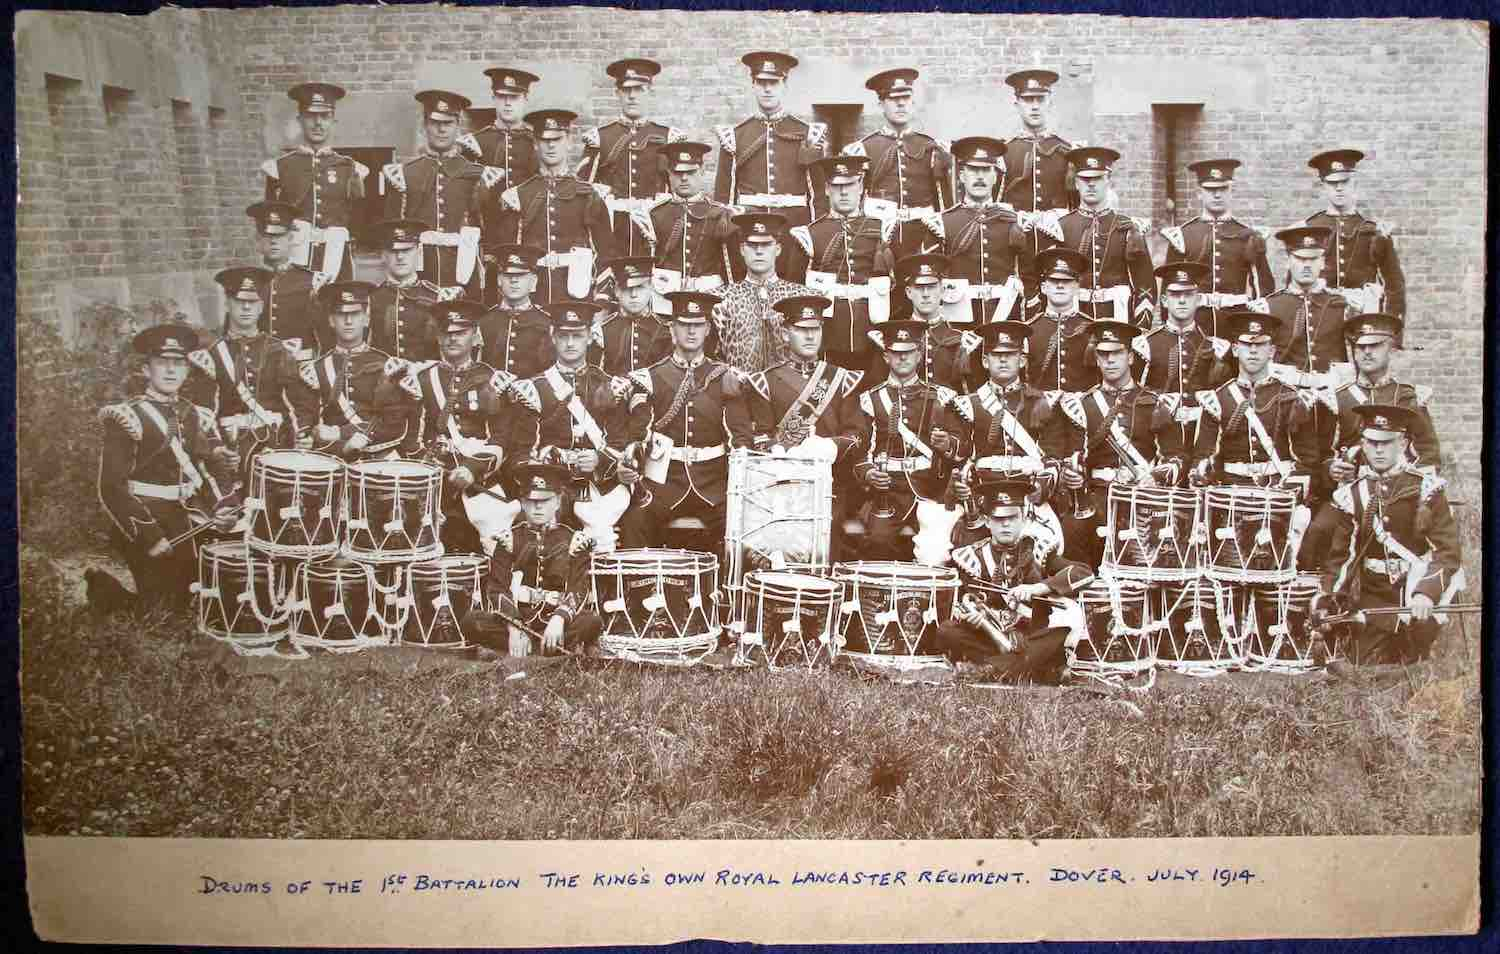 Photo of Drums of the 1st Battalion, The King's Own Royal Lancaster Regiment, Dover, July 1914